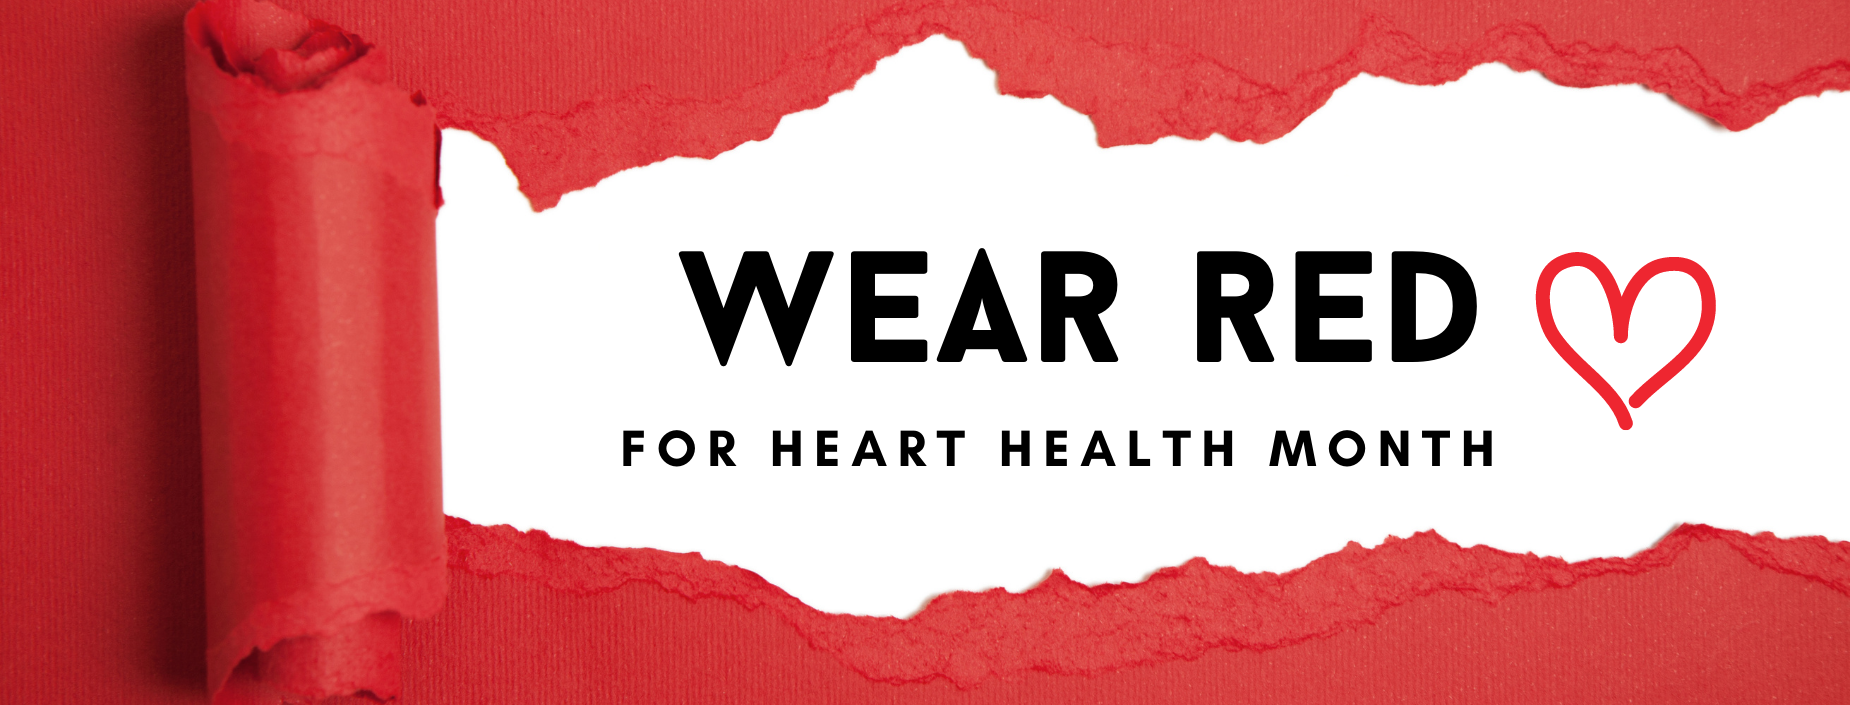 Wear Red for Heart Health Month